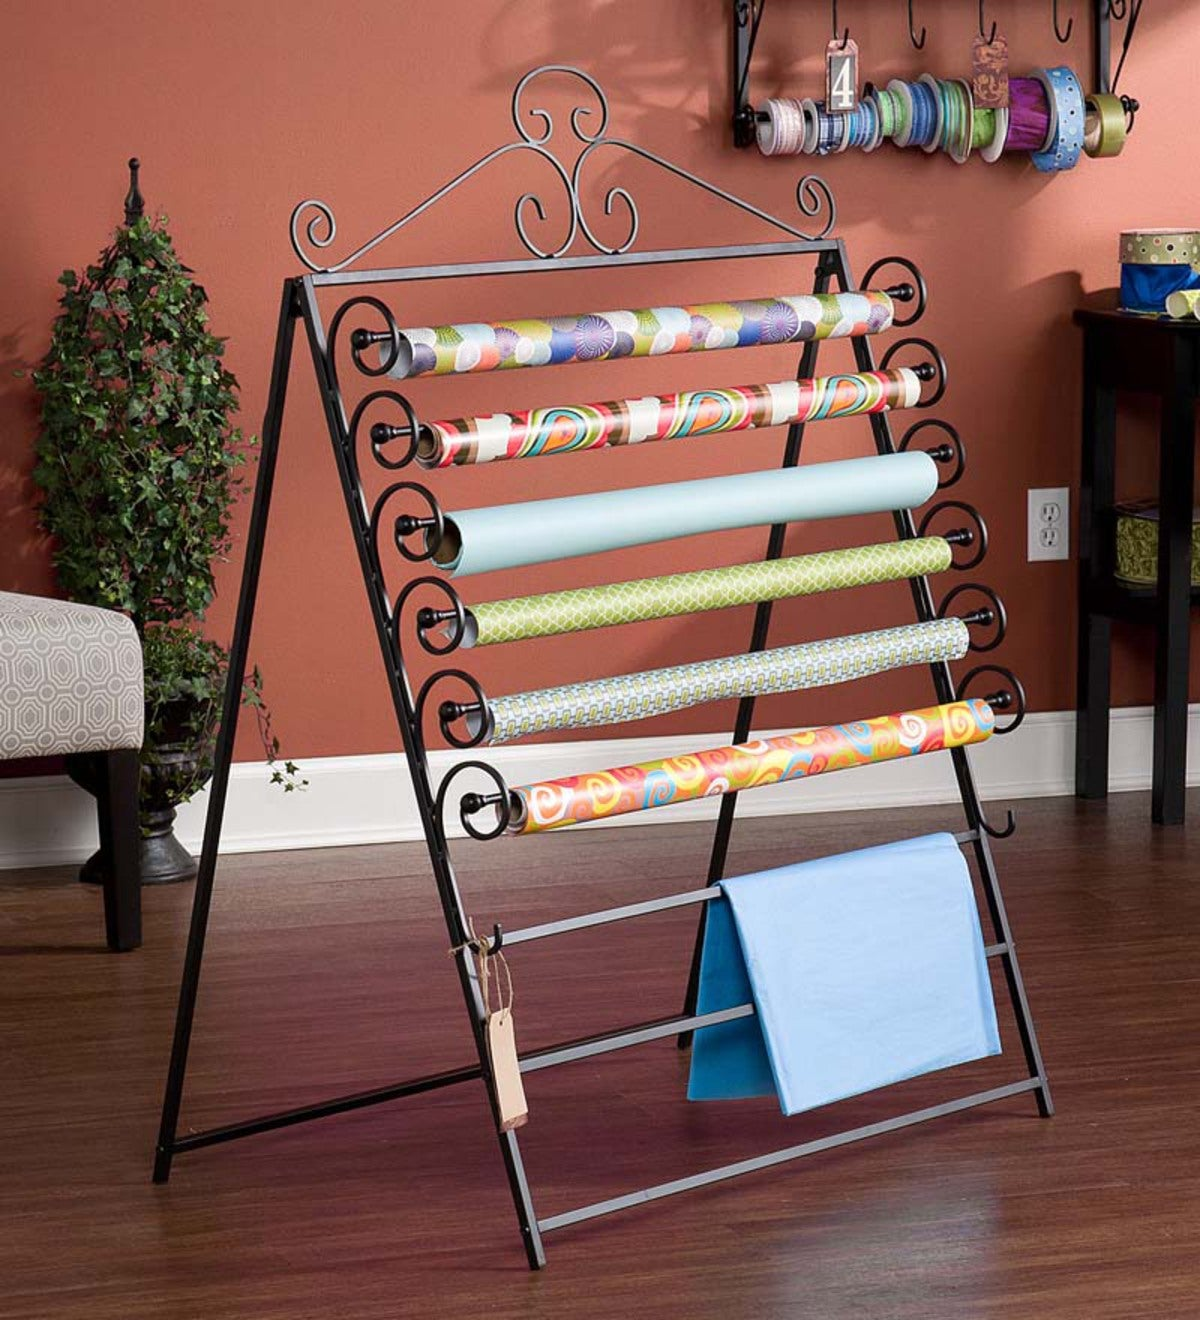 Craft Storage Rack and Gift Wrap Organizer